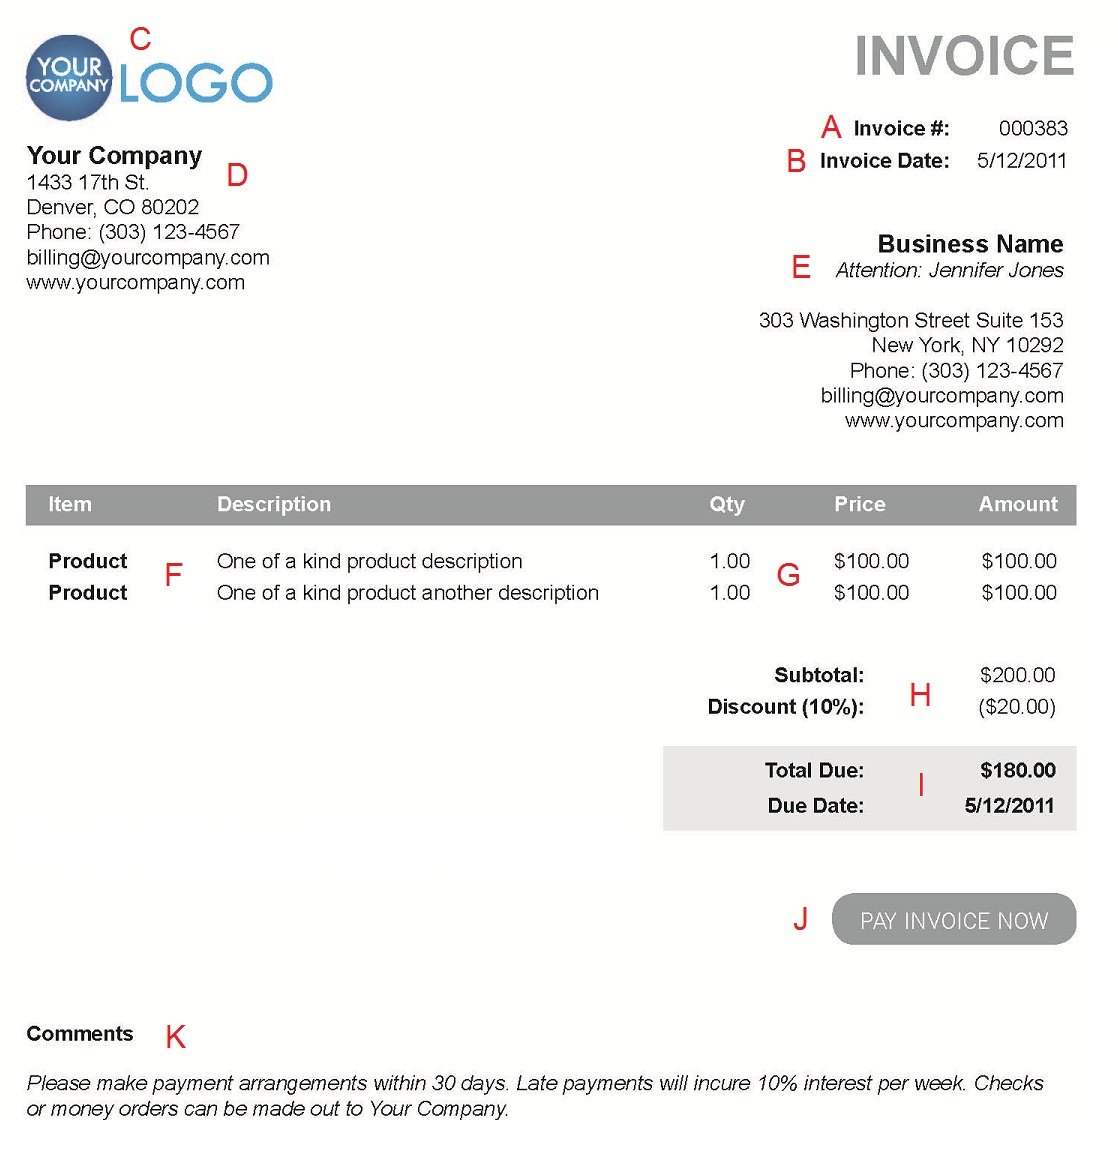 Thassosus  Sweet The  Different Sections Of An Electronic Payment Invoice With Entrancing A  With Archaic Handyman Invoices Also Definition Of Invoice In Accounting In Addition Pages Invoice Templates Free And Invoices To Go App As Well As Invoice Insurance Additionally Wawf My Invoice From Paysimplecom With Thassosus  Entrancing The  Different Sections Of An Electronic Payment Invoice With Archaic A  And Sweet Handyman Invoices Also Definition Of Invoice In Accounting In Addition Pages Invoice Templates Free From Paysimplecom